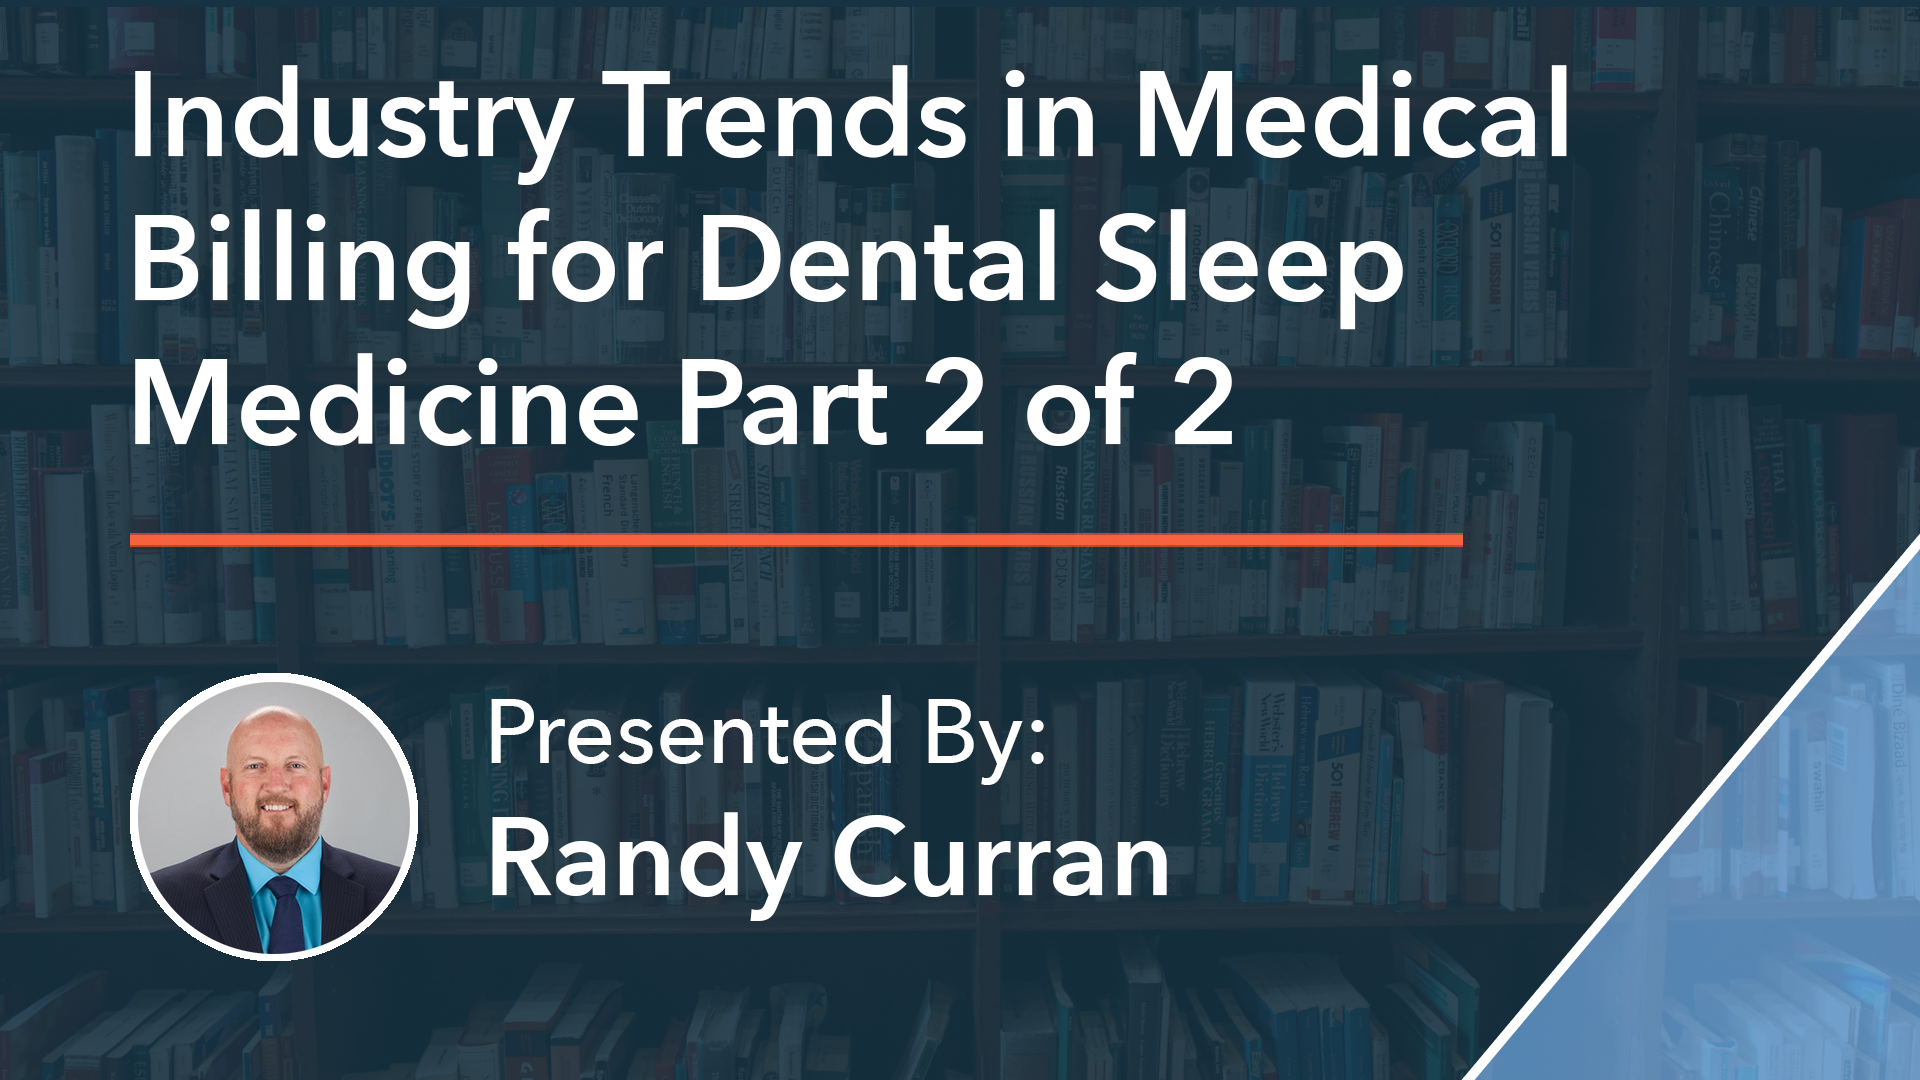 Industry Trends in Medical Billing for Dental Sleep Medicine Part 2 Randy Curran